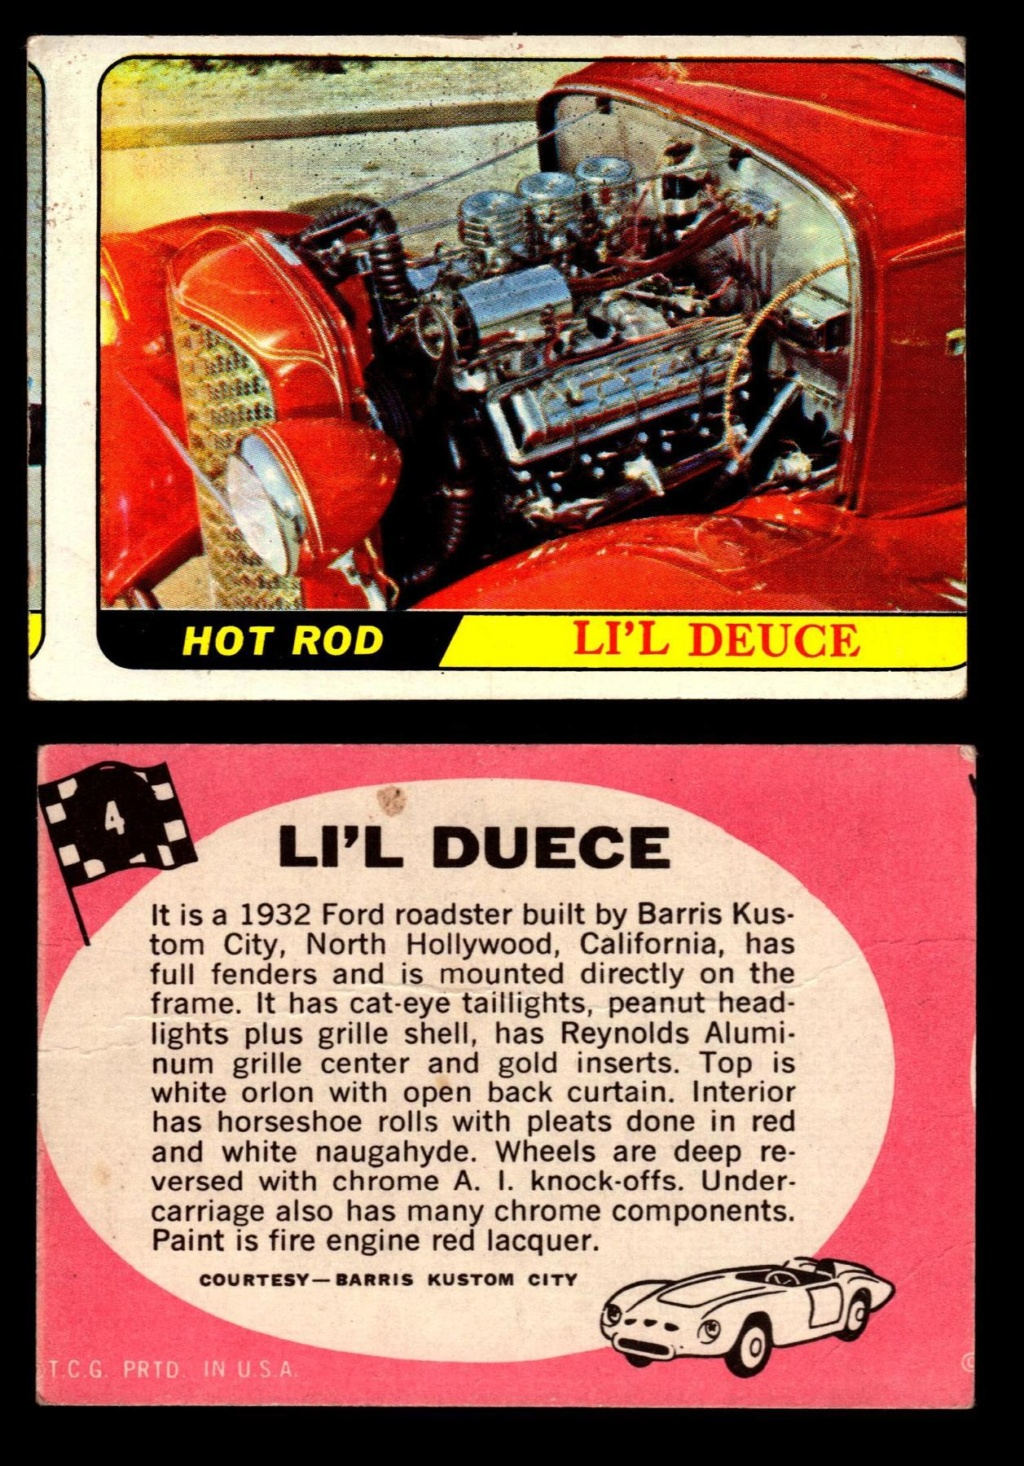 Hot Rods Topps - Vintage Trading Cards 1968 - Custom car - Dragster - Racer - Dream car - Barris Kustom City - Ed Roth Darrill Starbird, Gene Winfield, Bill Cuchenberry 4_f3a310